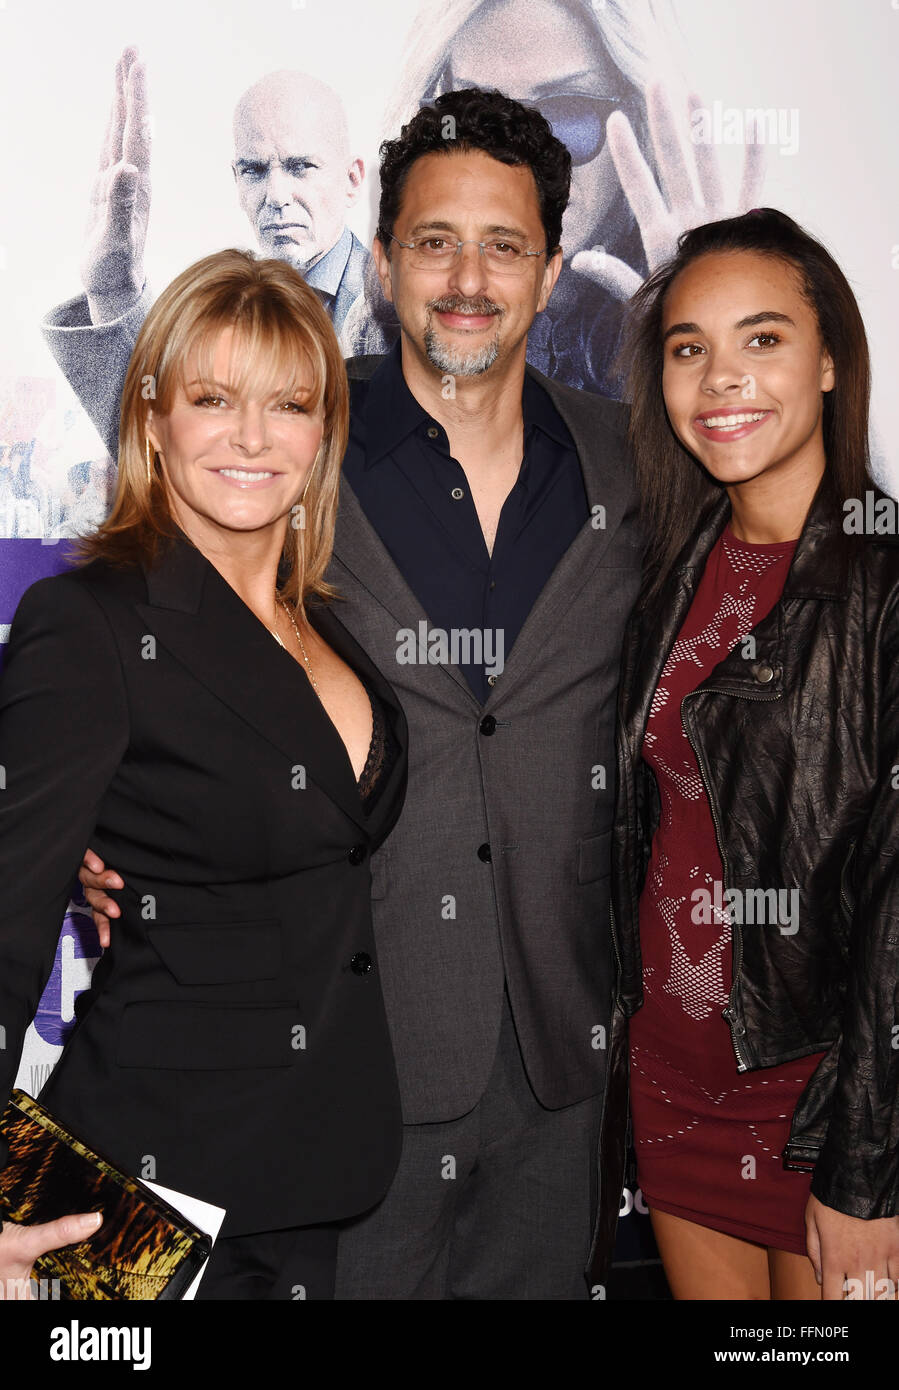 Producer Grant Heslov (C) and guests arrive at the premiere of Warner Bros. Pictures' 'Our Brand Is Crisis' - Stock Image